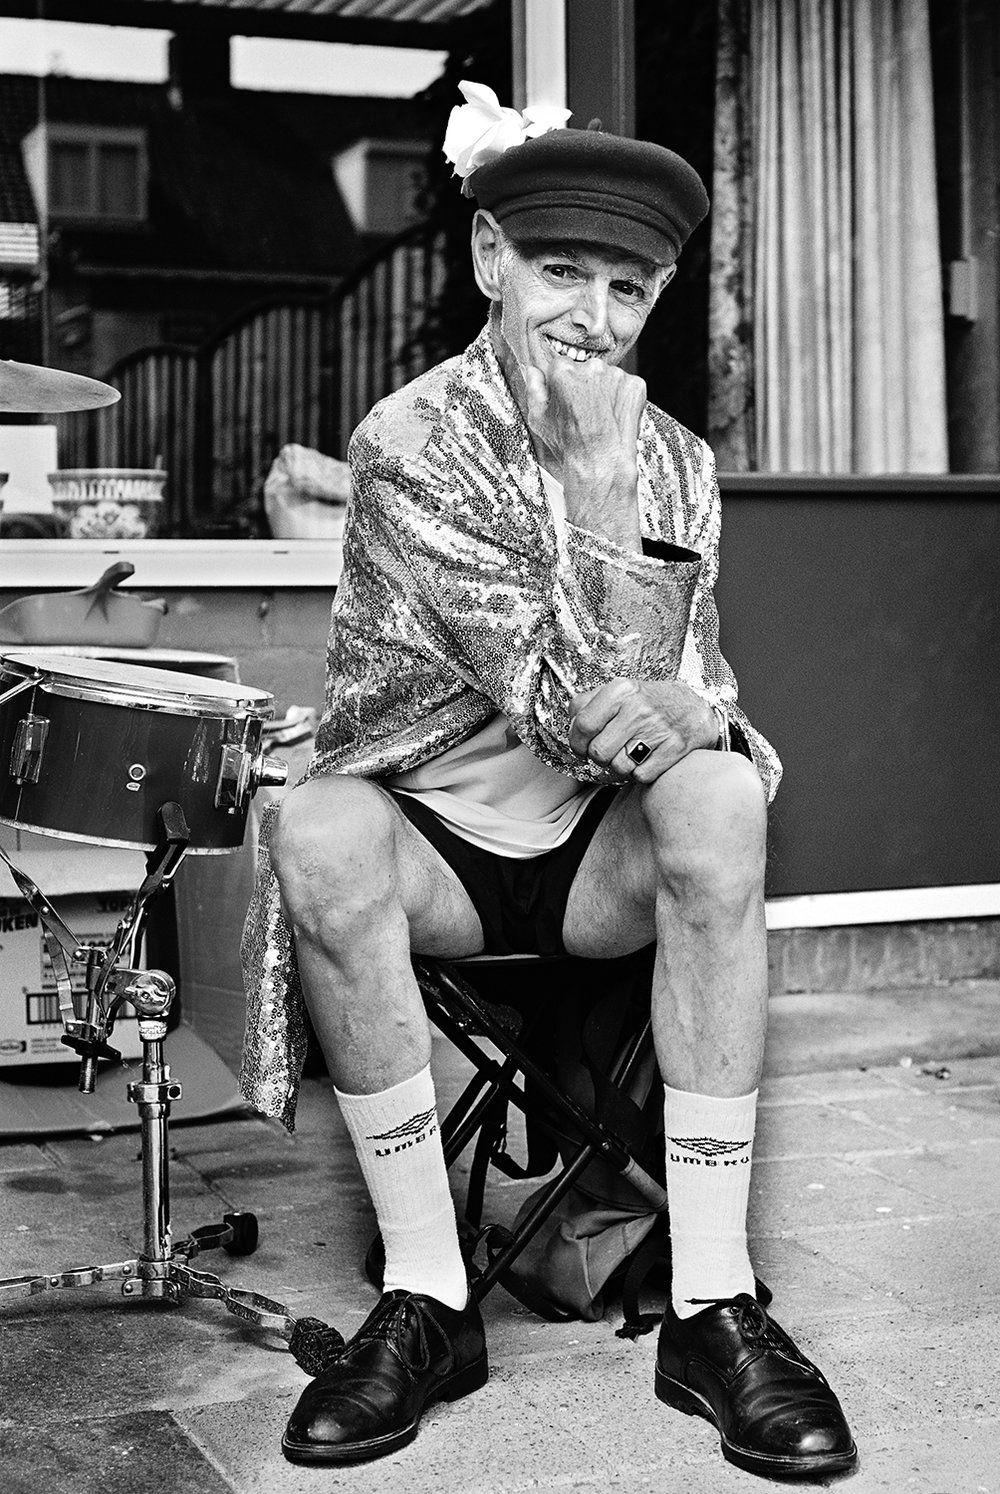 Huub alias Heintje // Street artist He was exactly what I thought he'd be. Confused at times, enthusiastic like a kid at a carnival and, at the same time, both confident and shy-ish. After countless acts in one of his shiny jackets, either as a drummer or a living statue, all he really wants, is to be famous. Luckily he's 'world famous' in the city of Eindhoven. 8/10